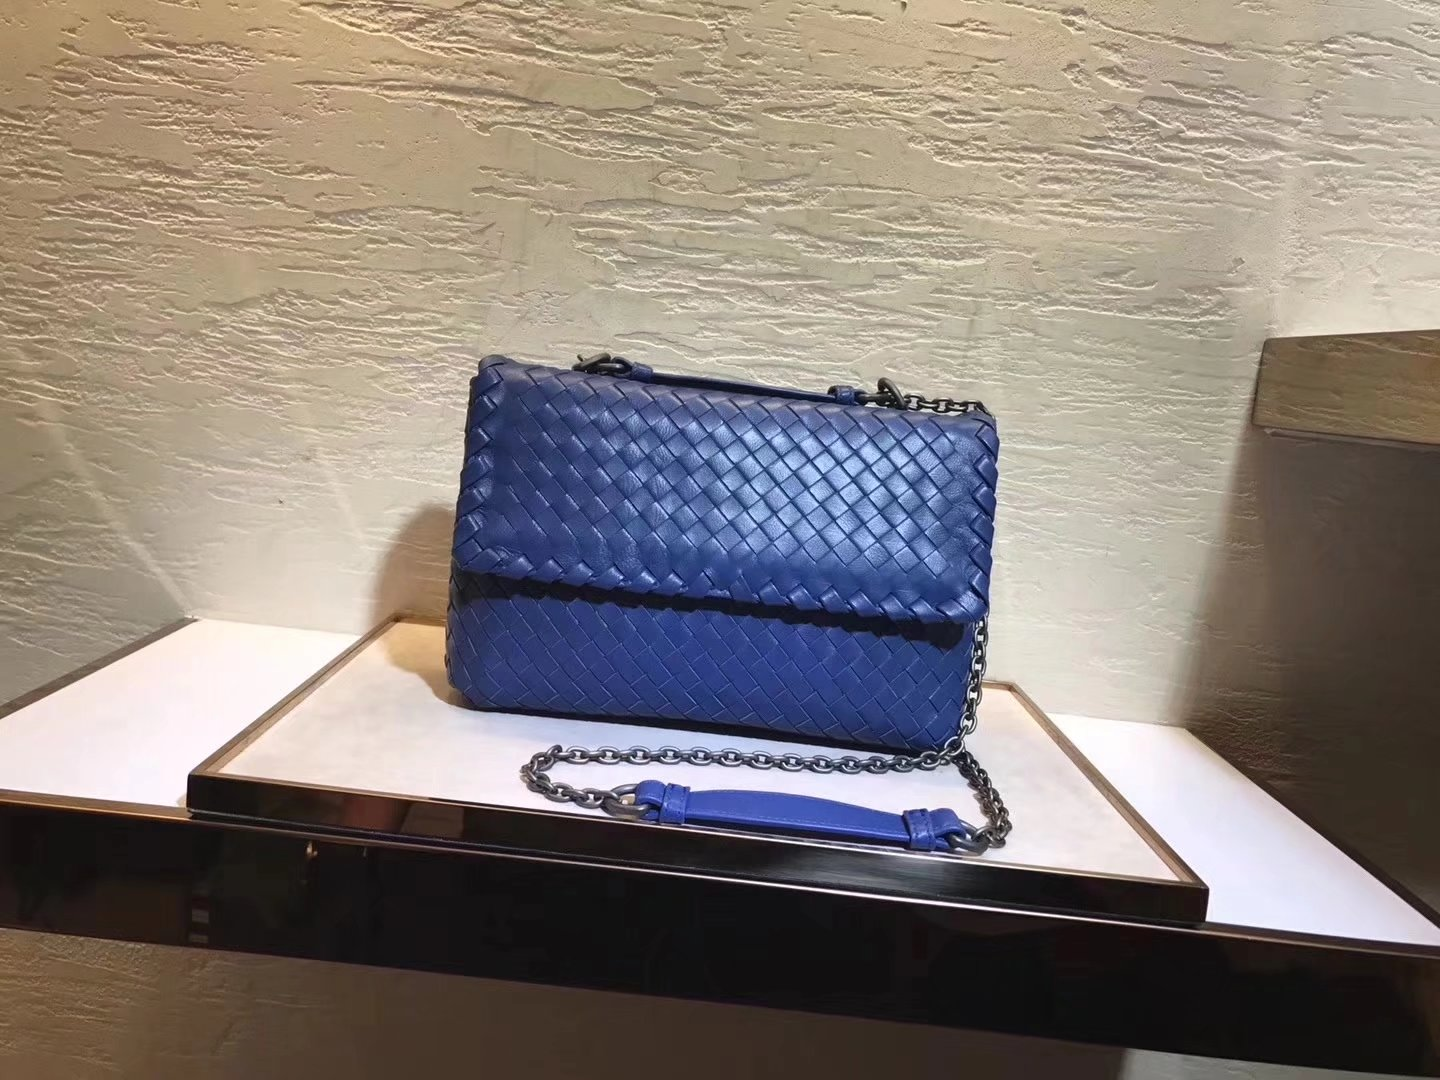 Bottega Veneta Pacific Intrecciato Nappa Baby Olimpia Bag Blue